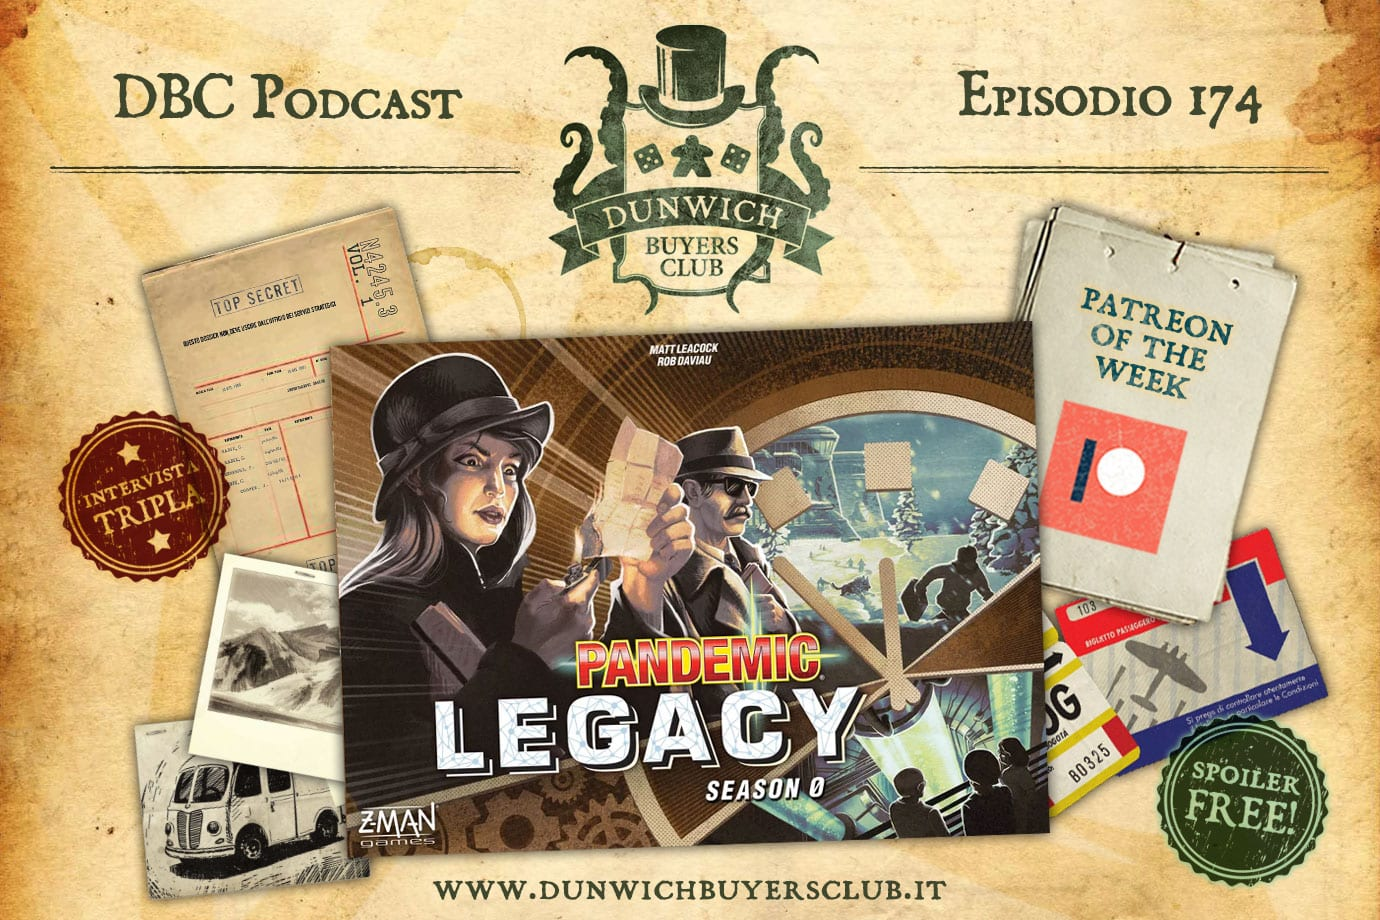 DBC 174: Pandemic Legacy Season 0 (no spoiler) + Patreon of the Week